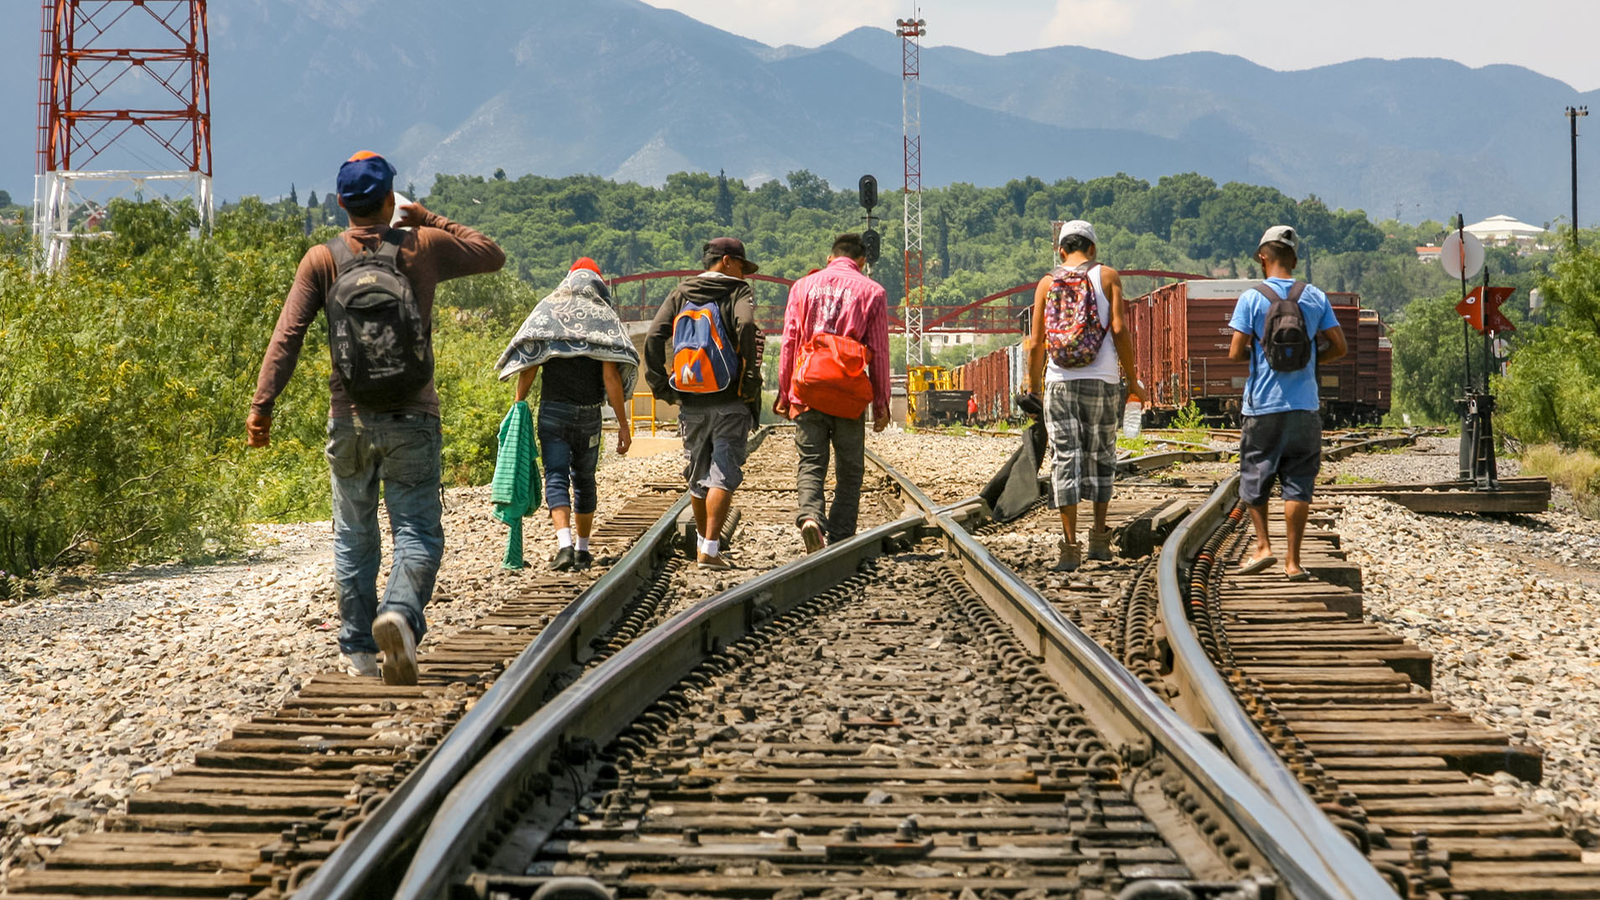 Migrants Crossing Train Tracks